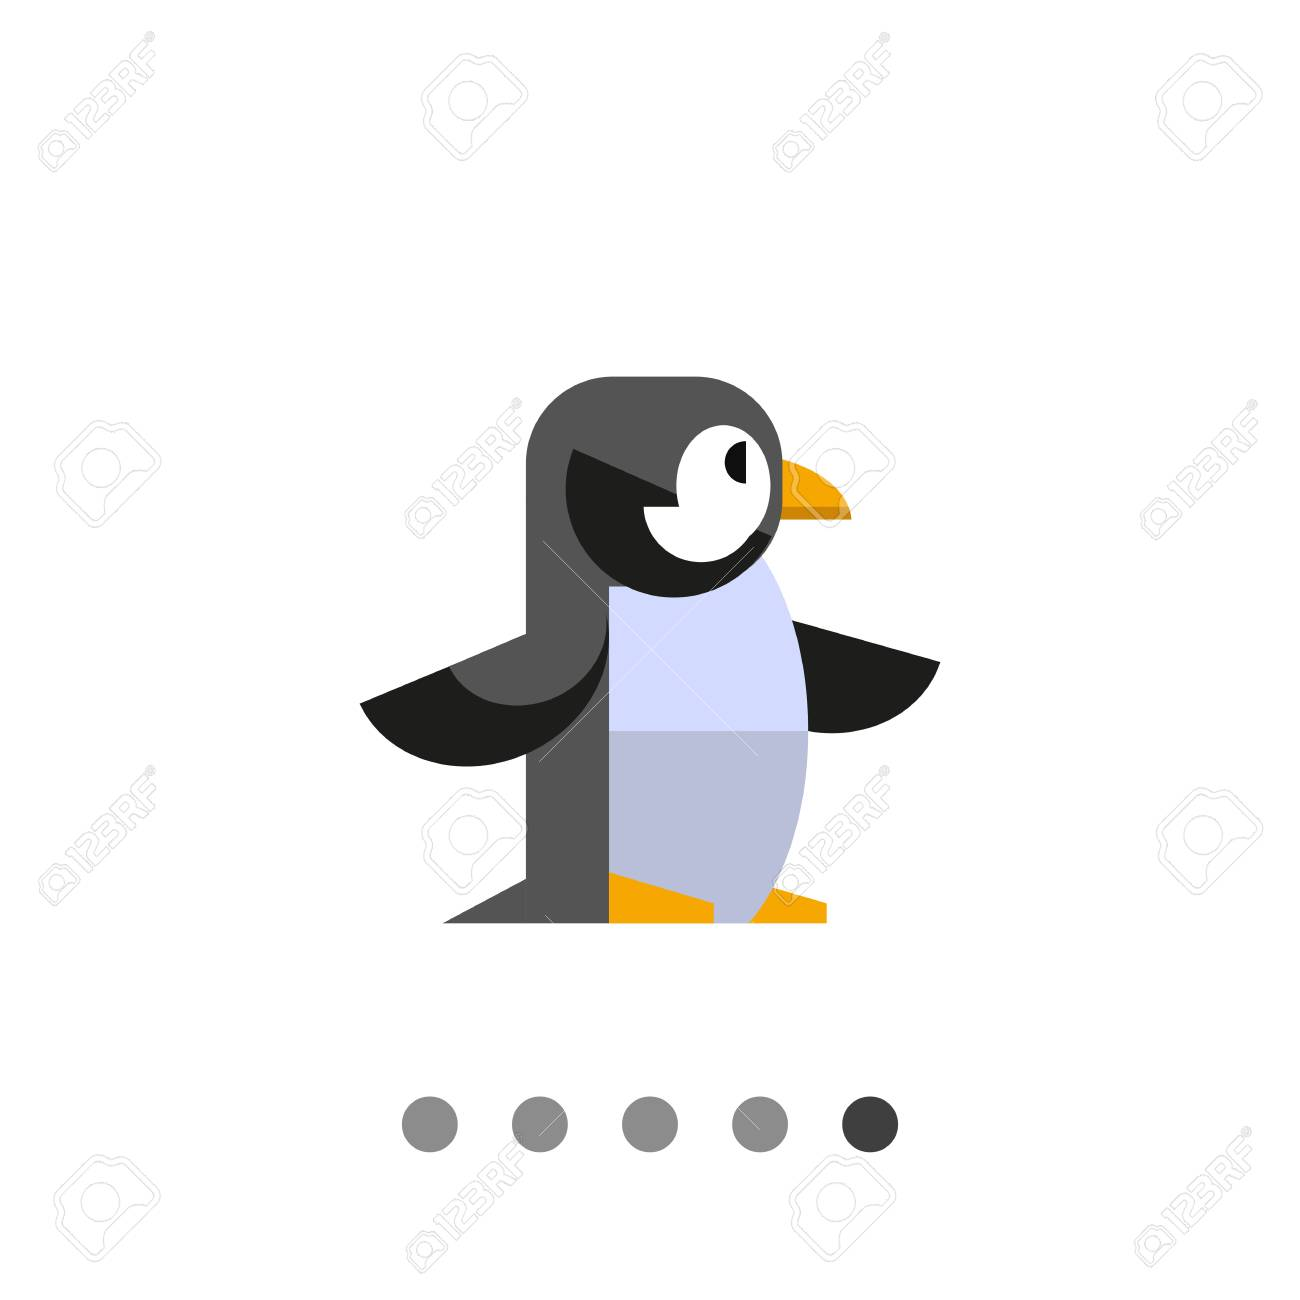 Multicolored vector icon of penguin, side view - 64002918